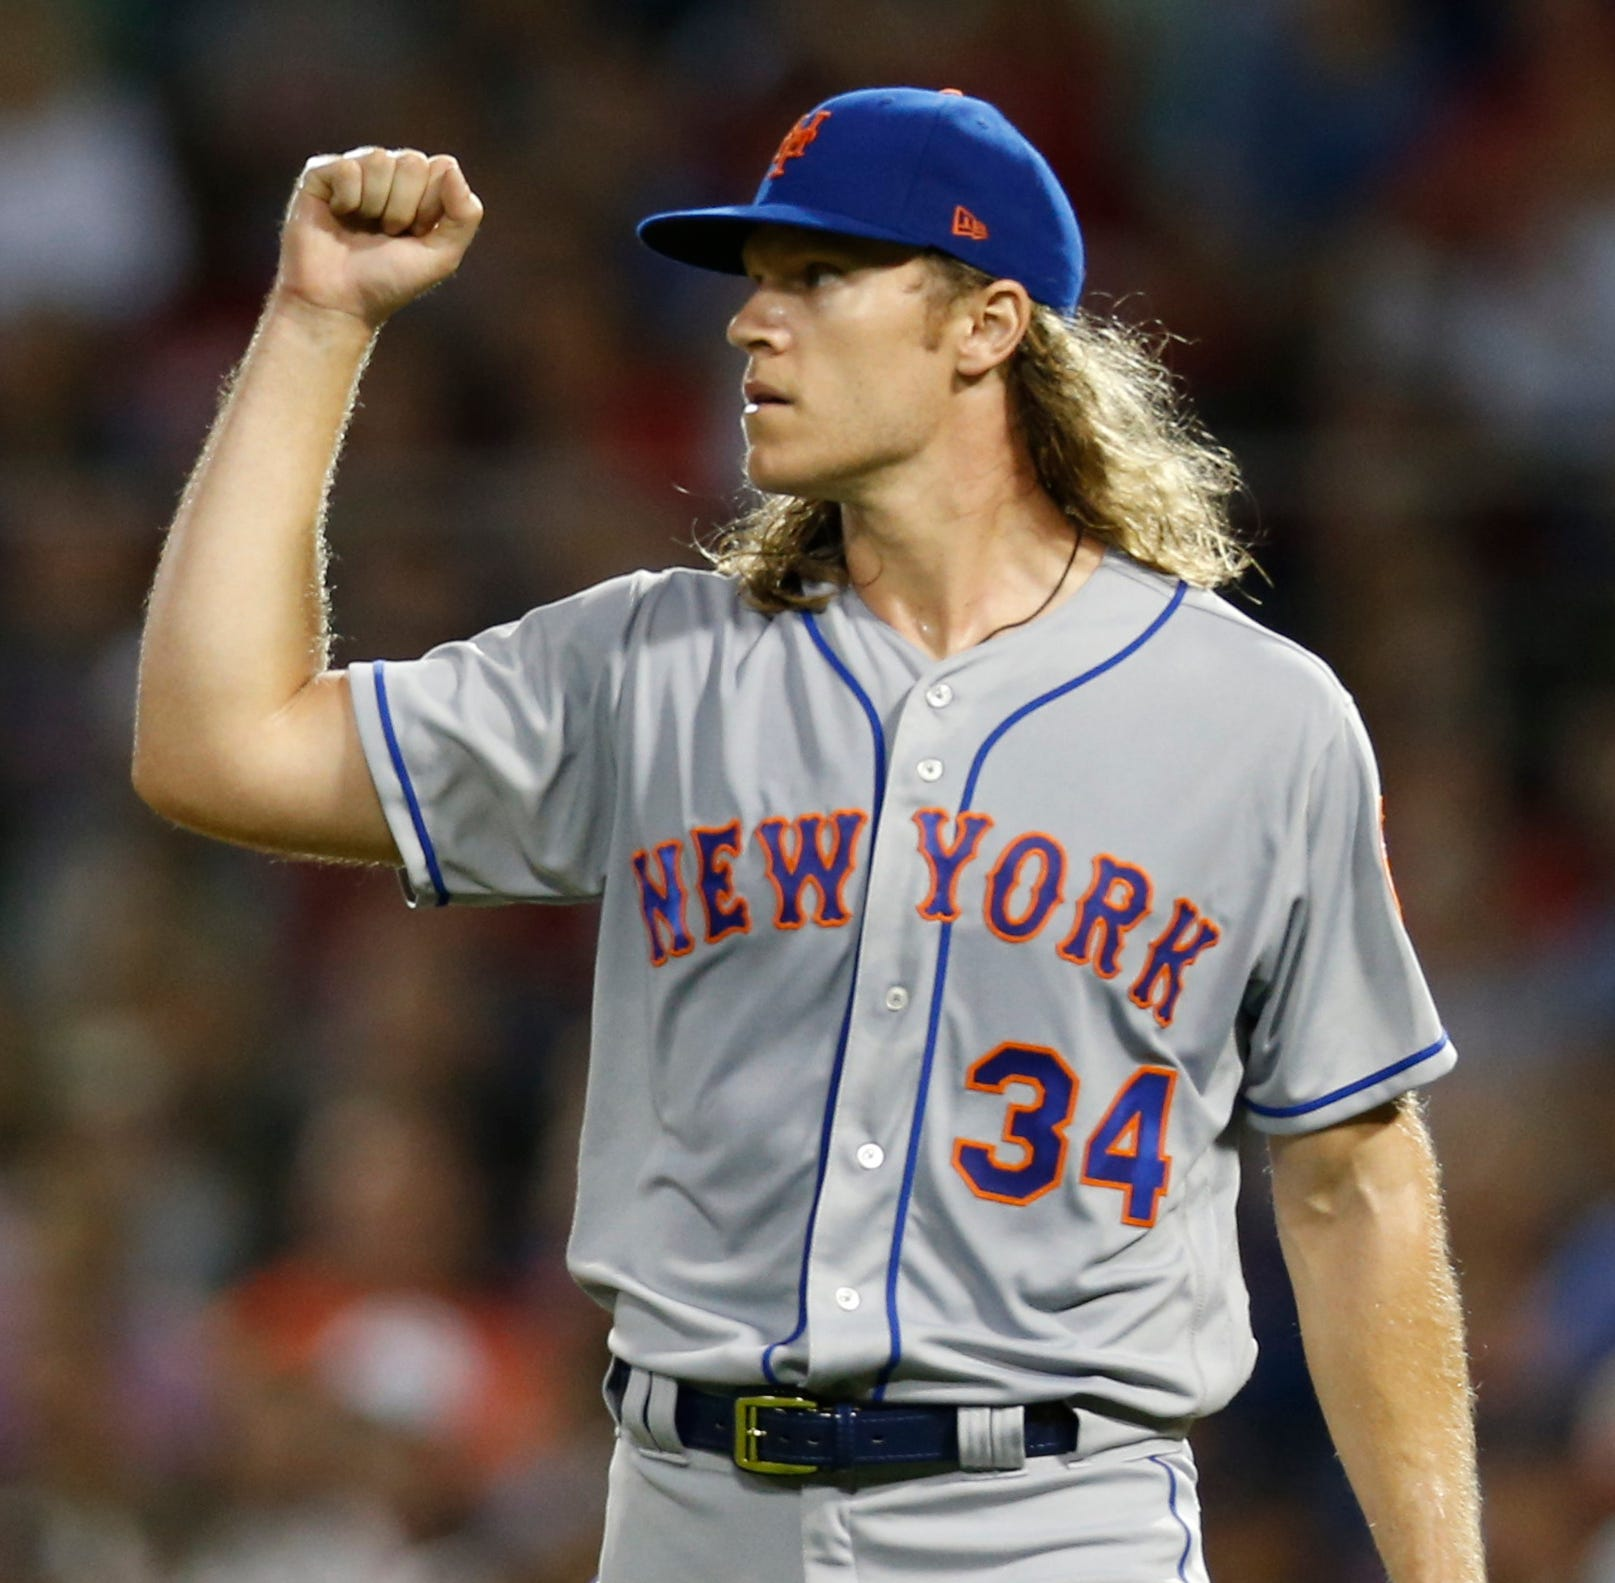 Yankees pitching solution complicated with J.A. Happ, Noah Syndergaard and others possible